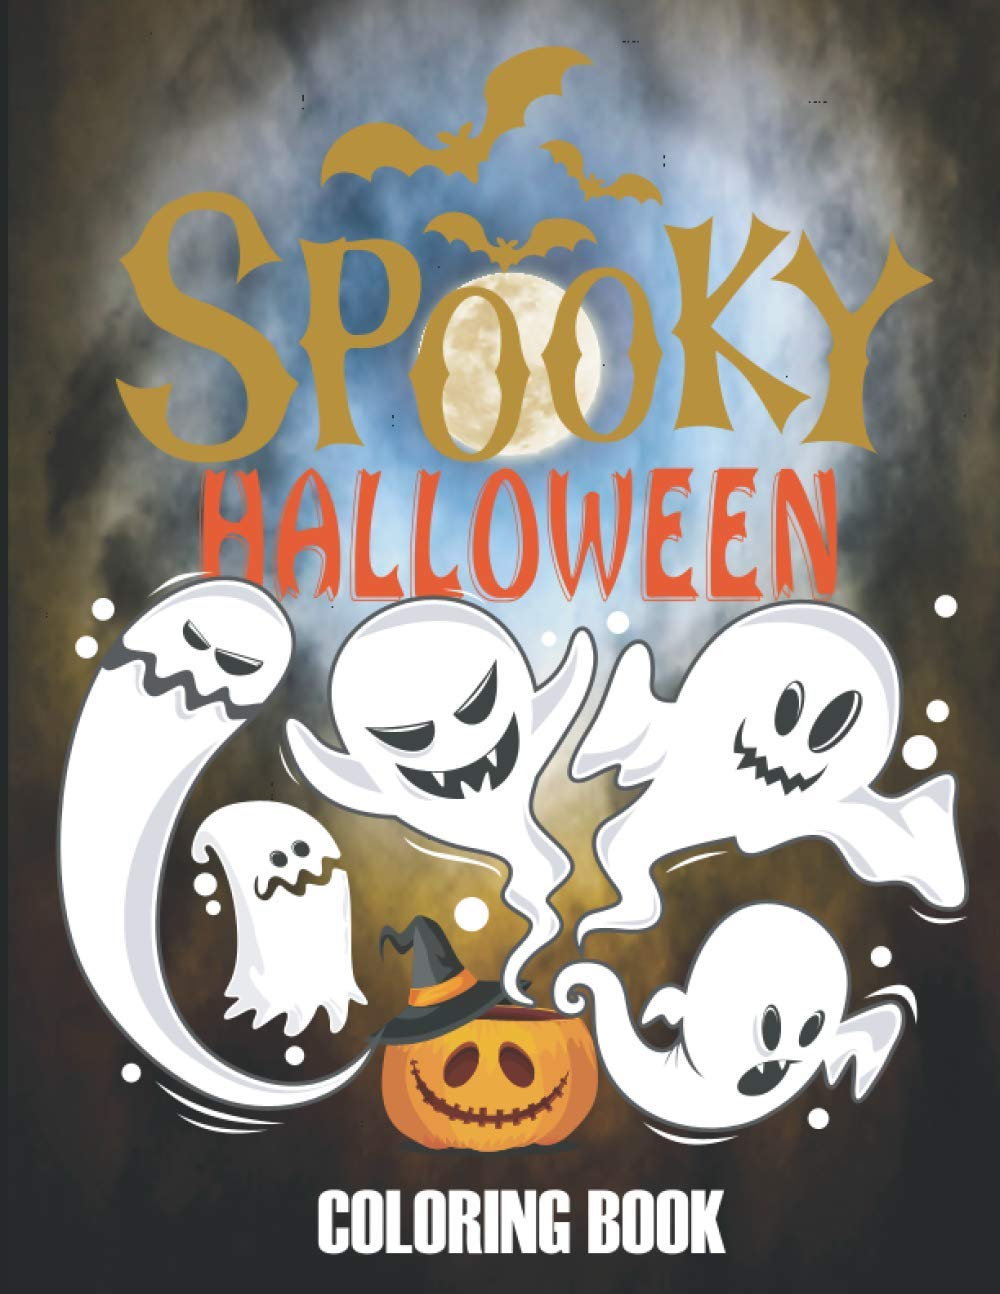 Spooky Halloween Coloring Book Whimsical Halloween Coloring Book For Kids Toddlers With Scary Halloween Monsters Witches And Ghouls Coloring Pages For All Halloween Fans Spooky Halloween Books Publishing Spooky